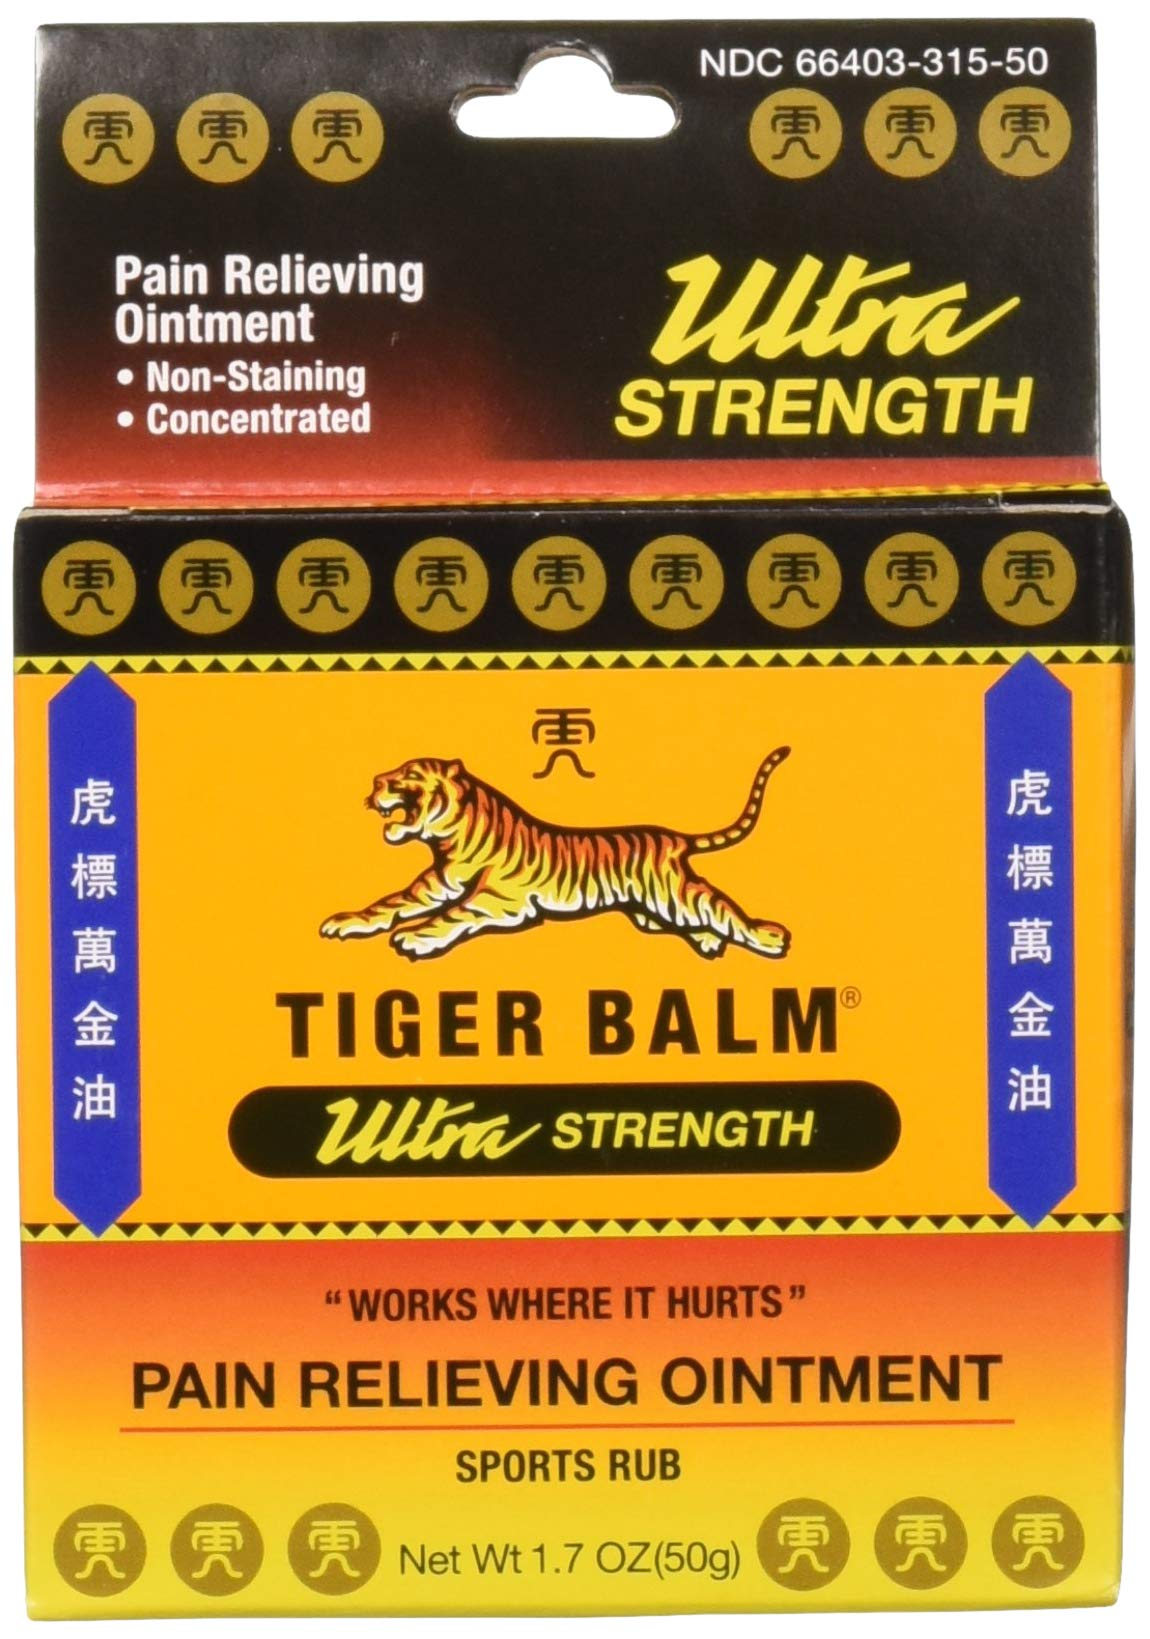 Tiger Balm Sport Rub Pain Relieving Ointment, Ultra Strength 1.70 oz (Pack of 4) by Tiger Balm